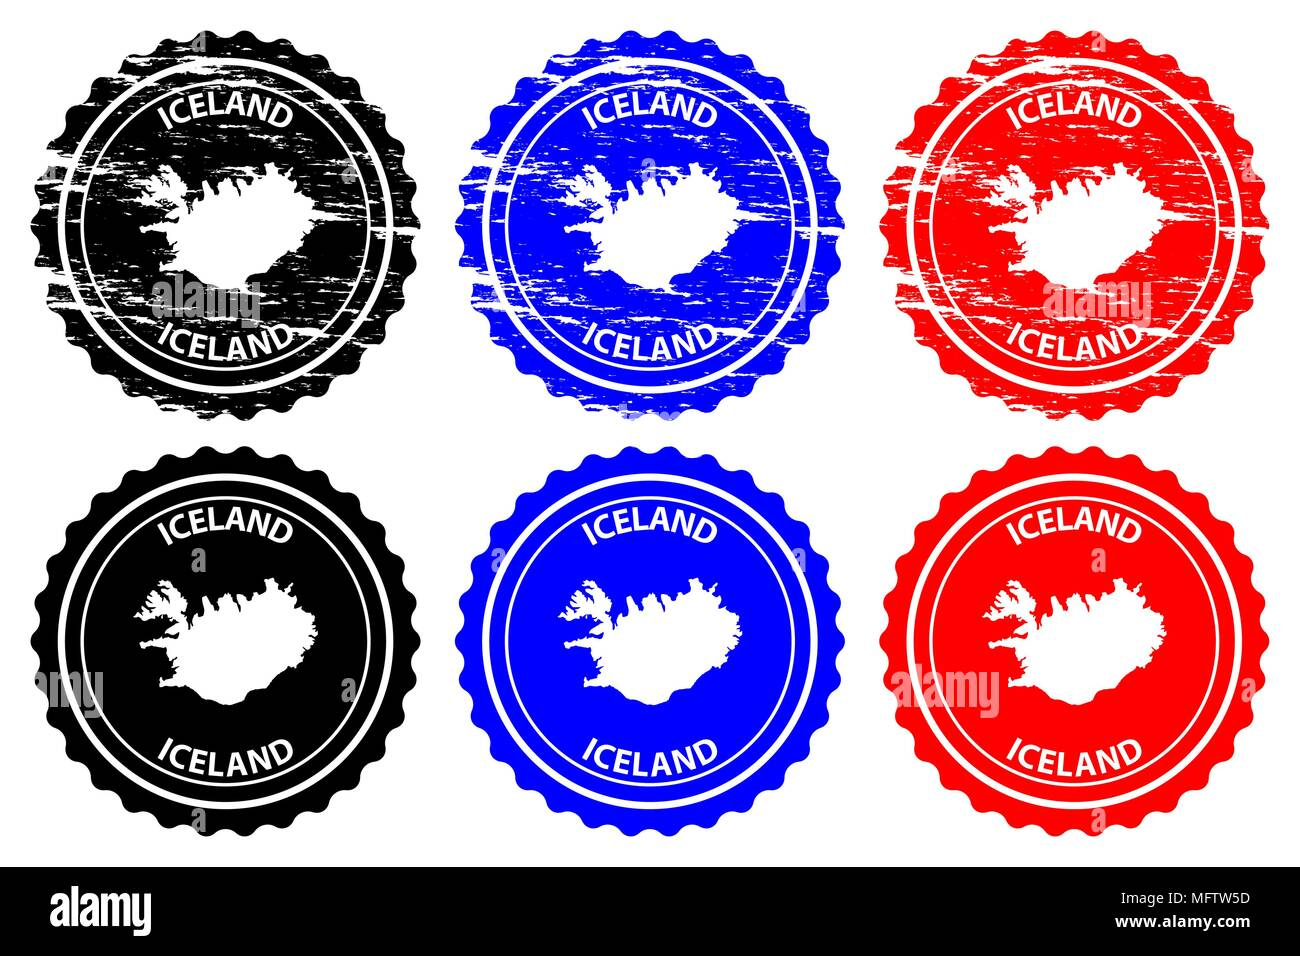 Iceland - rubber stamp - vector, Iceland map pattern - sticker ...